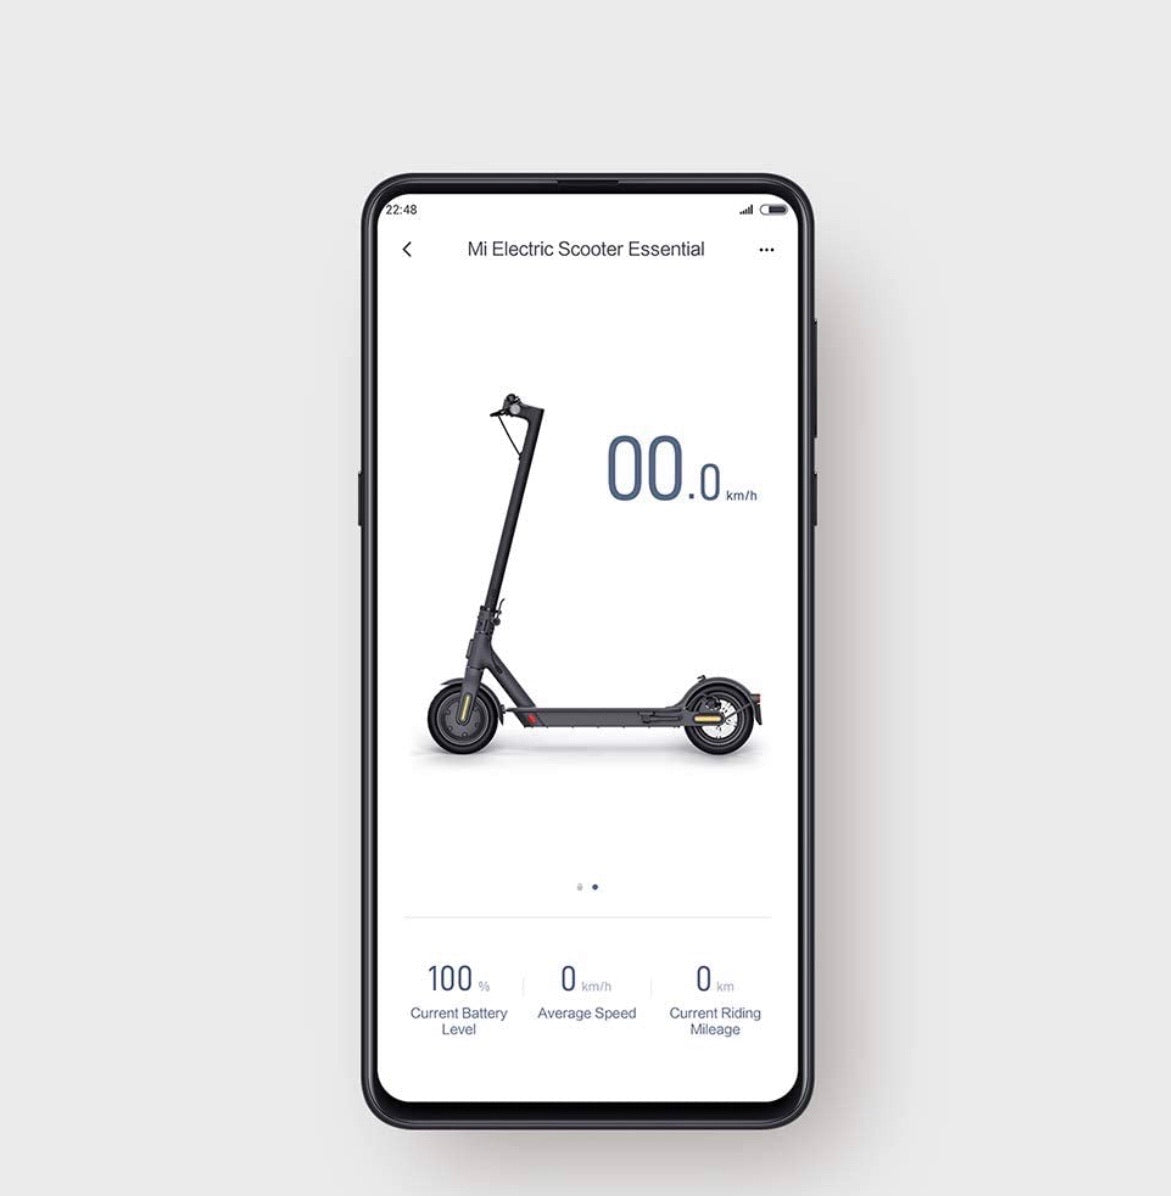 Xiaomi 1S Electric Scooter Smart Phone App